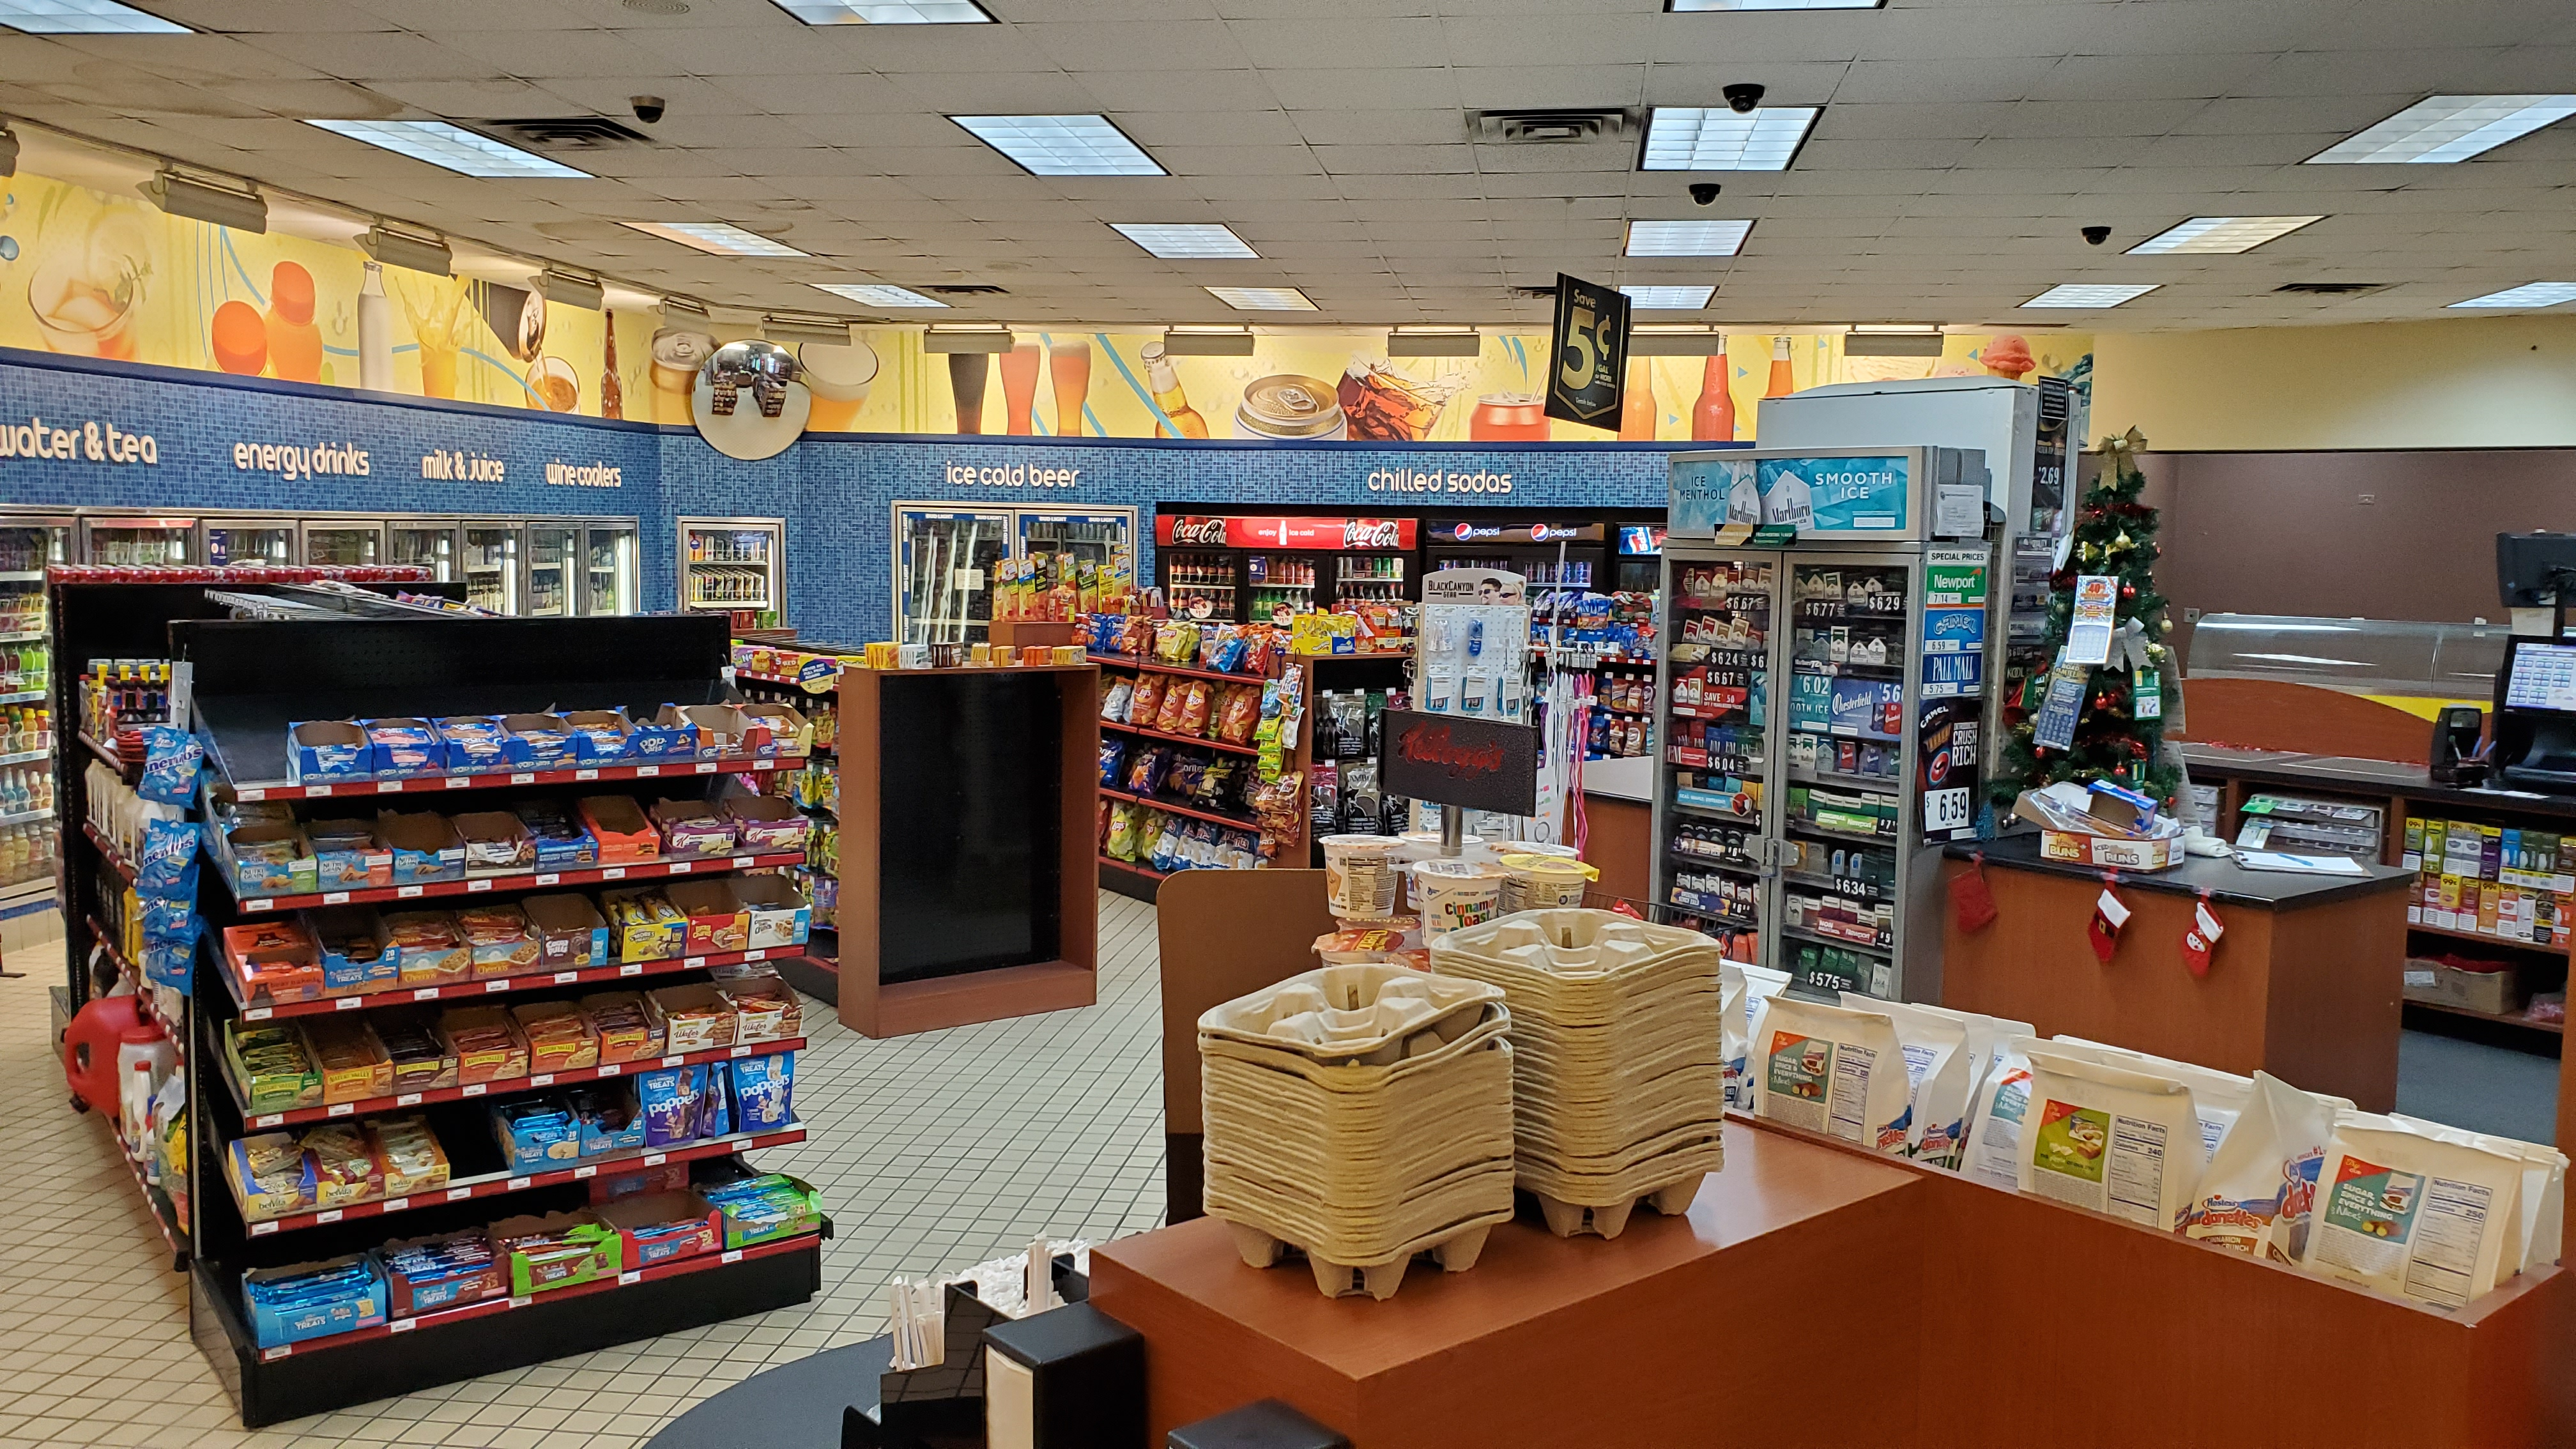 Inside Shell Gas Station